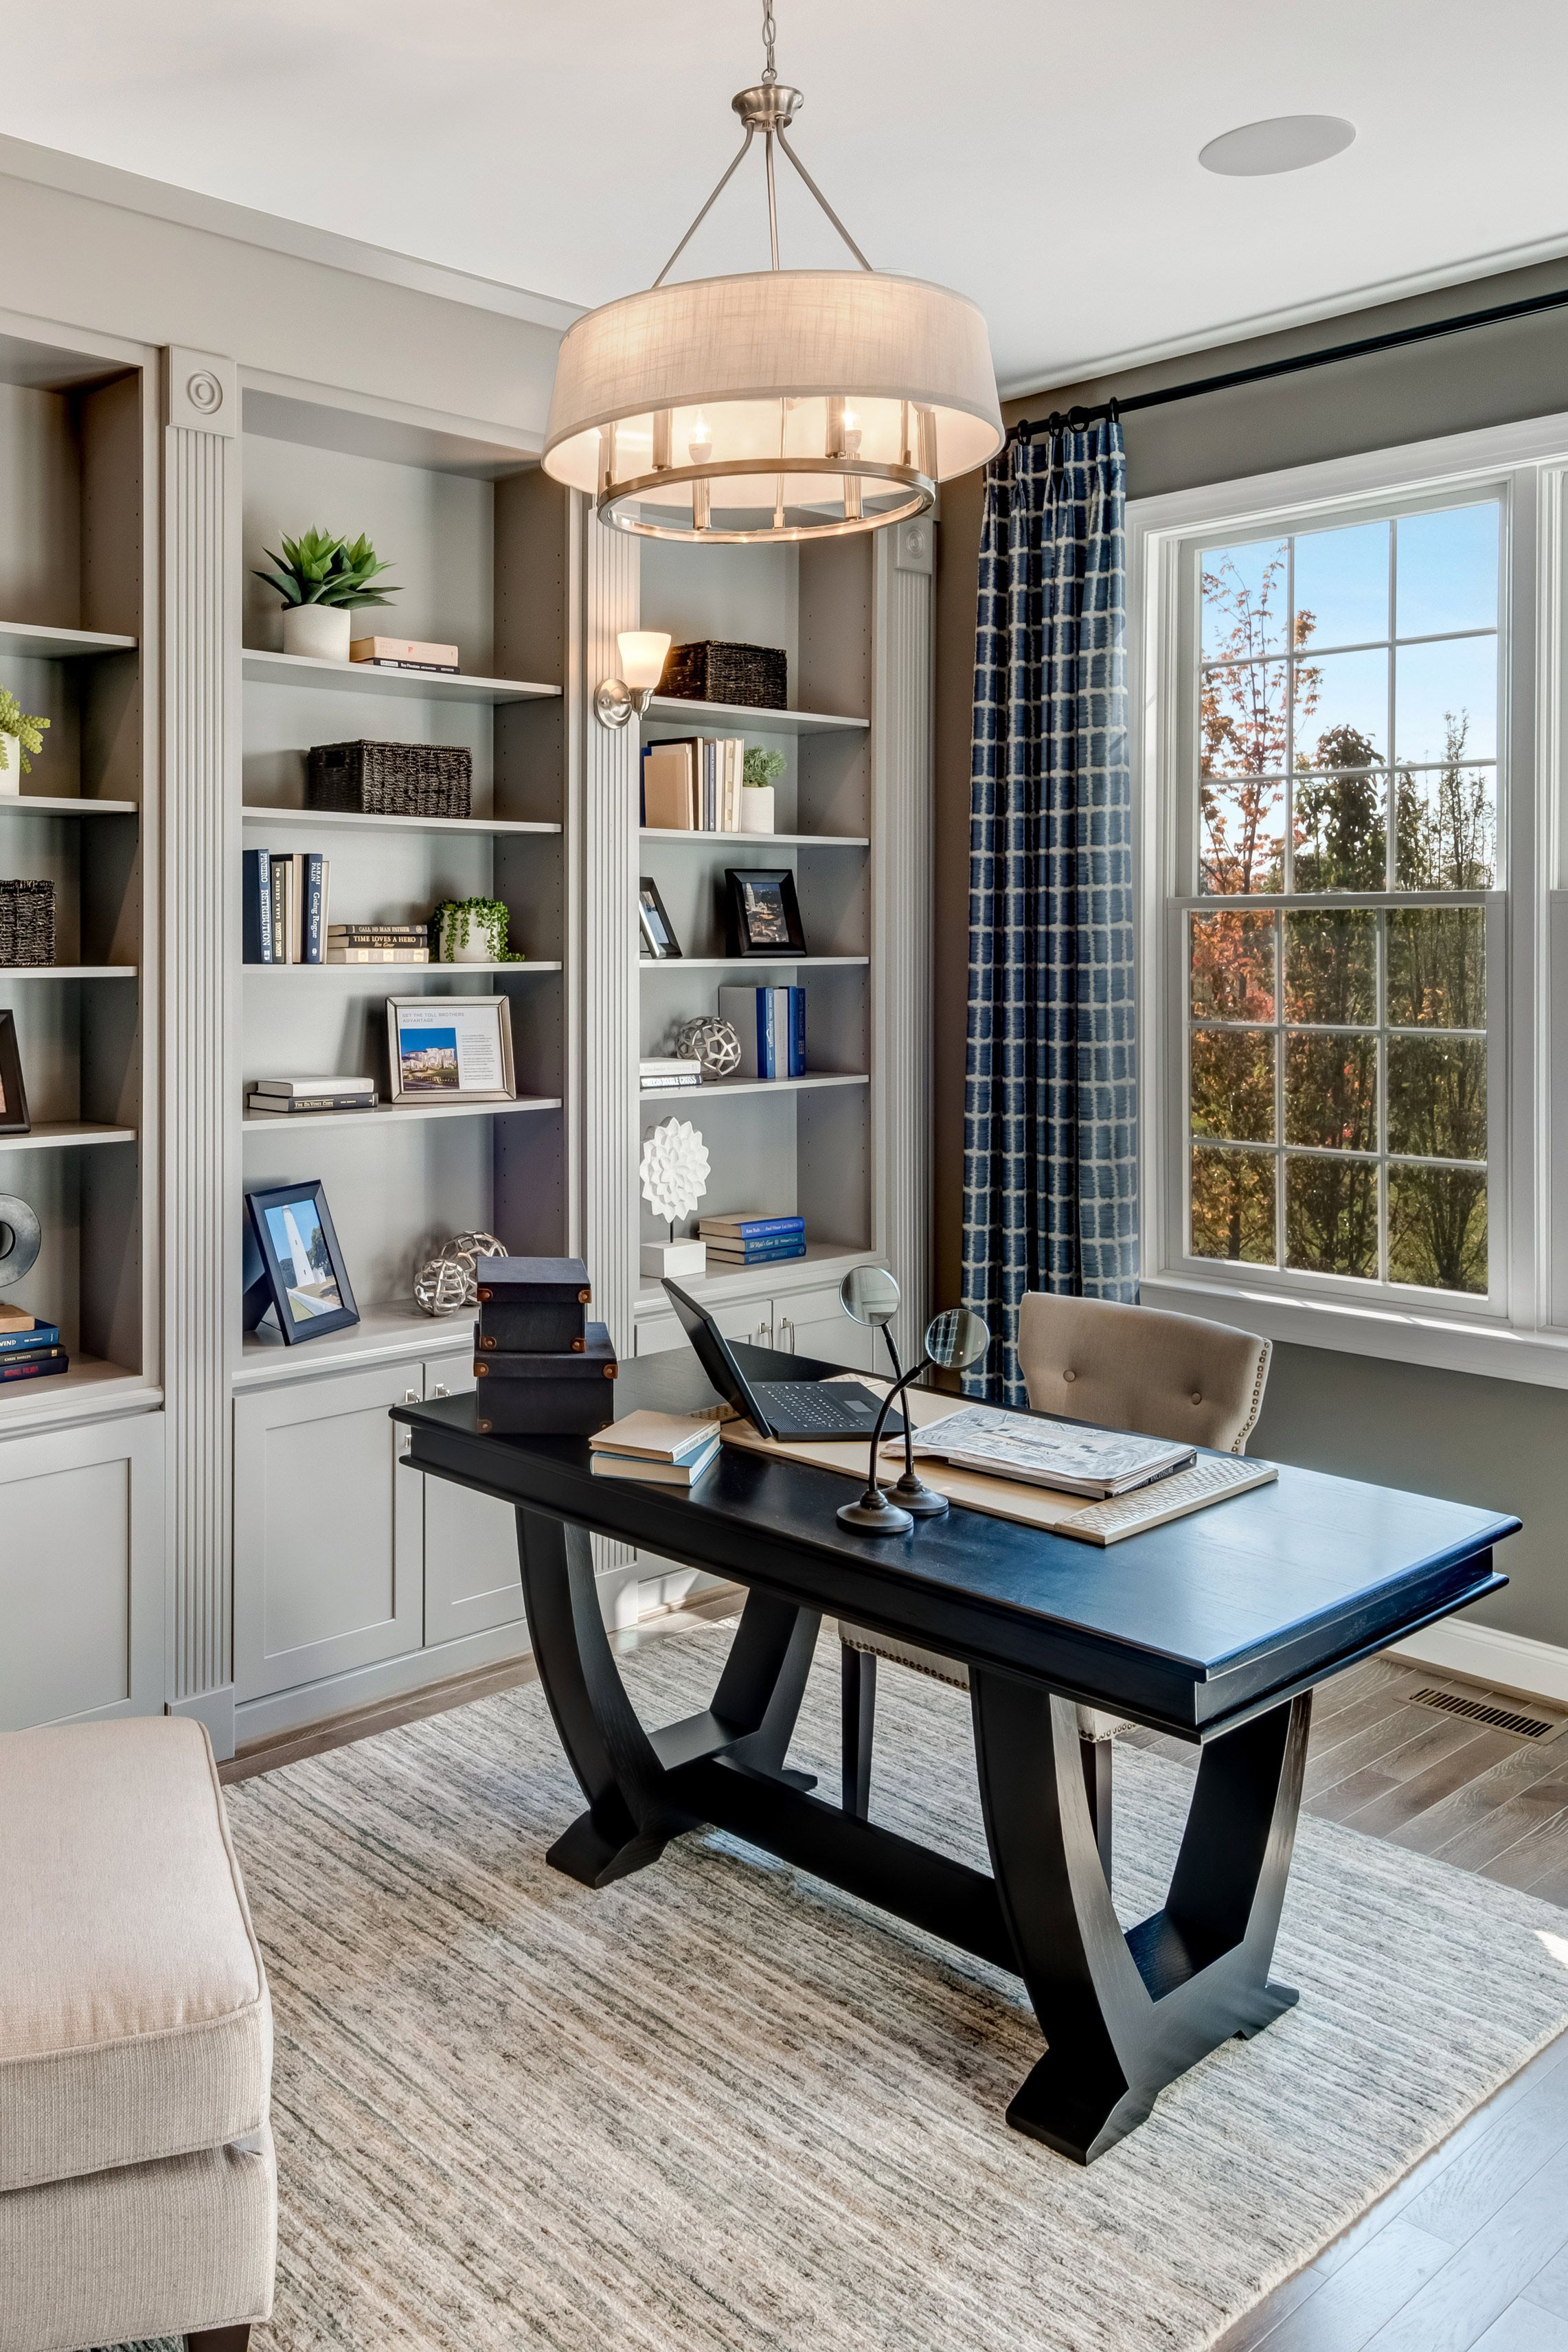 20 Trendy Ideas For A Home Office With Skylights: Wherever Possible, Use Natural Light By Letting The Sun Shine Through Windows And Skylights